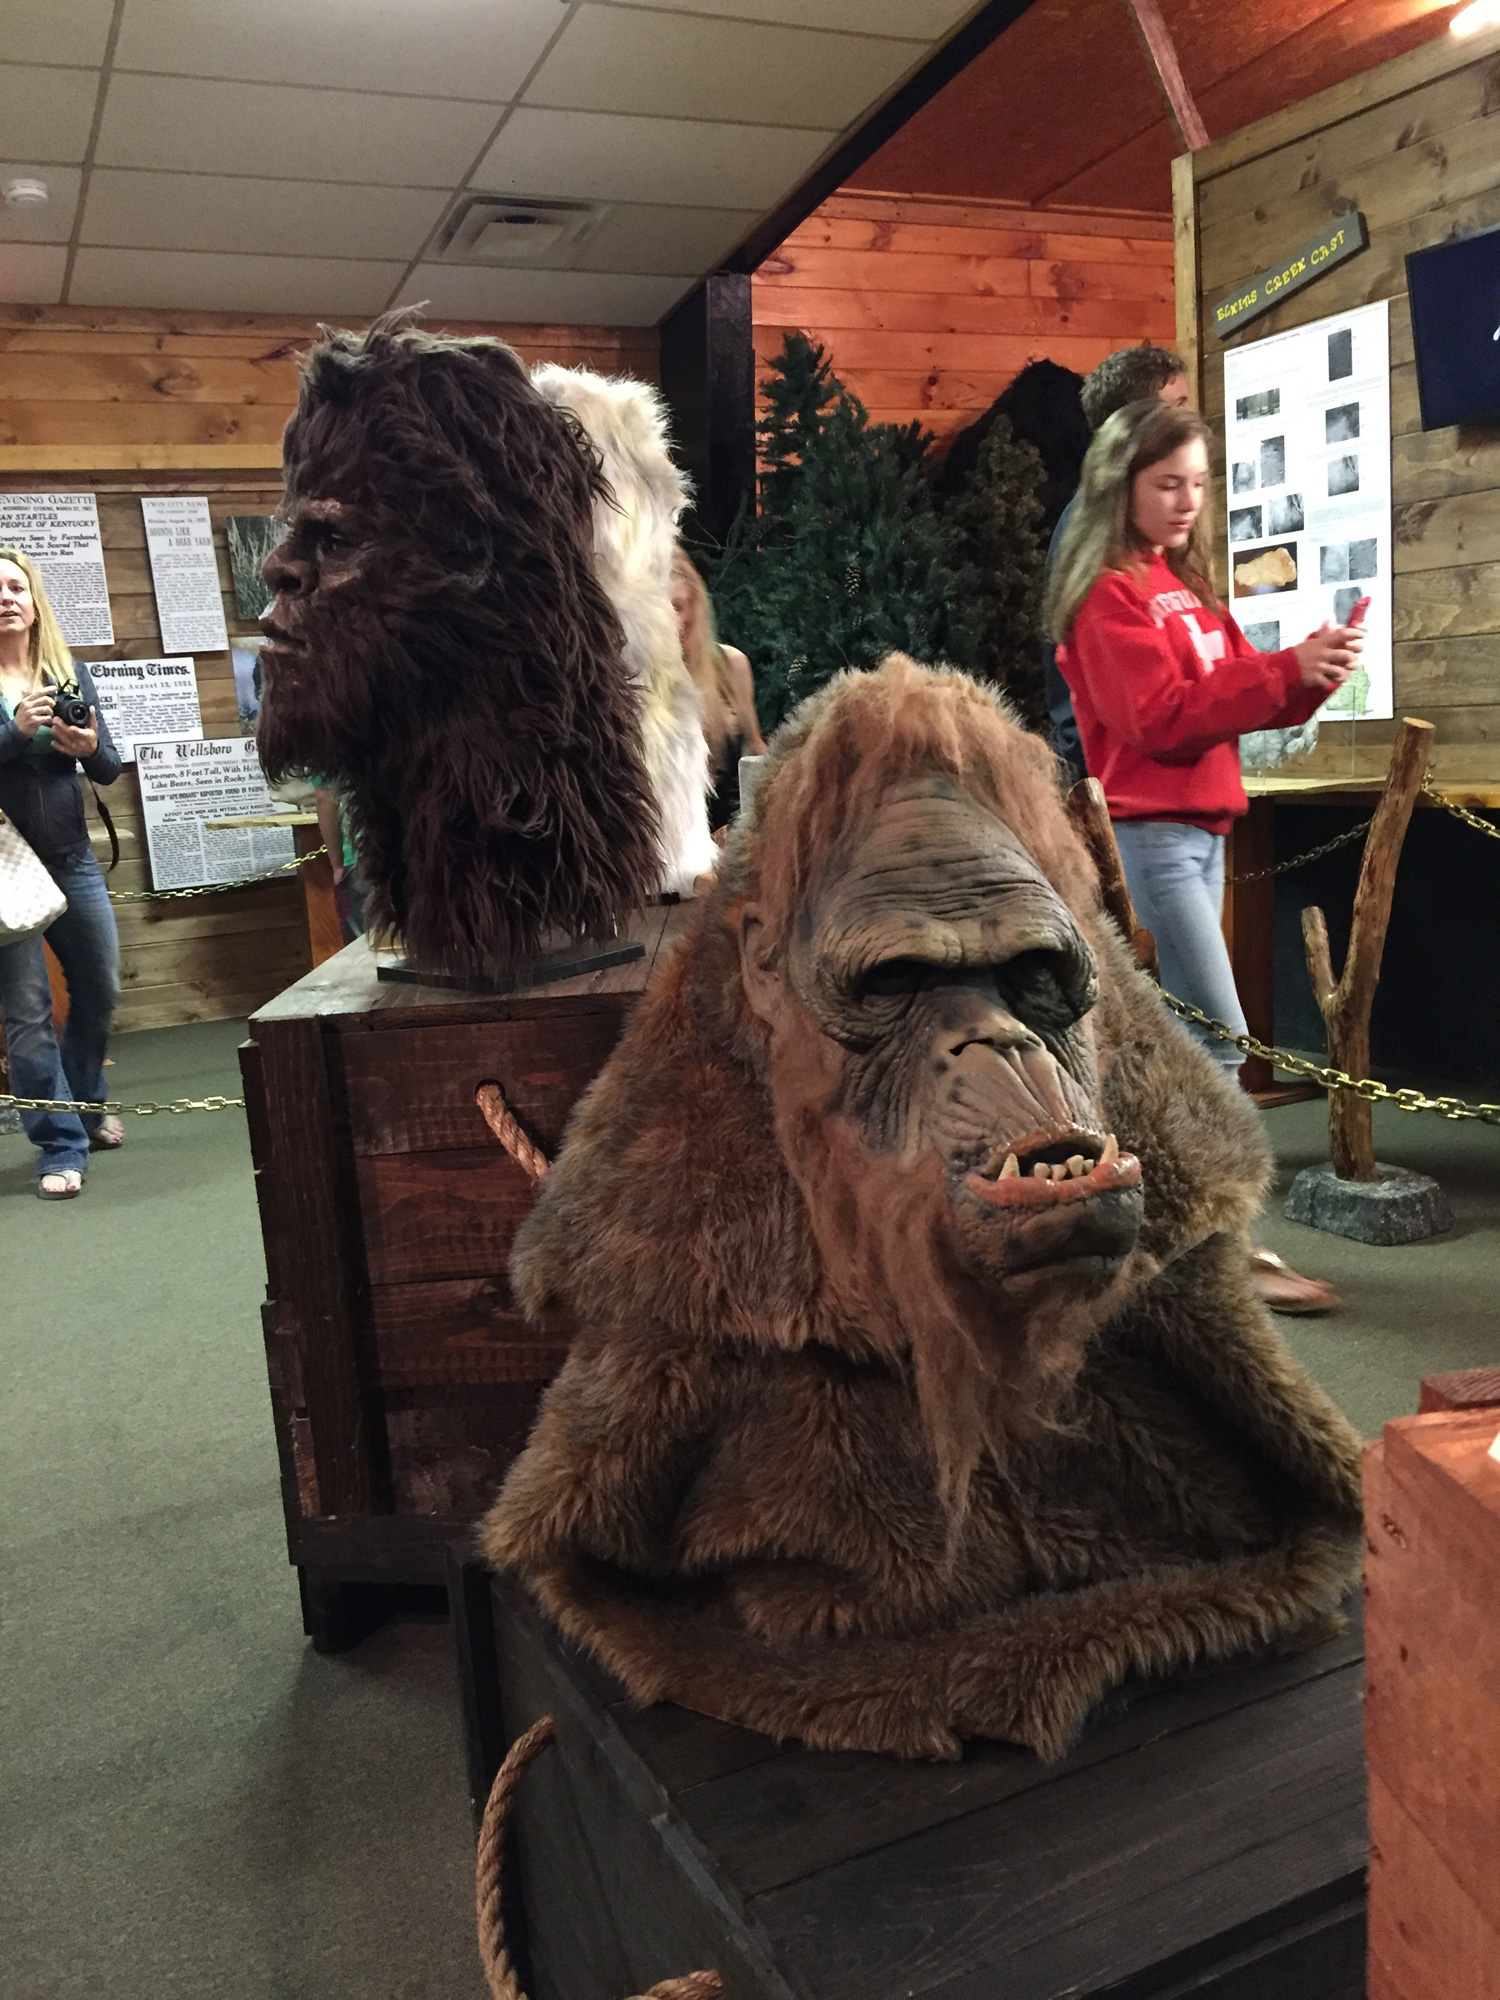 Expedition: Bigfoot in Cherry Log, Georgia